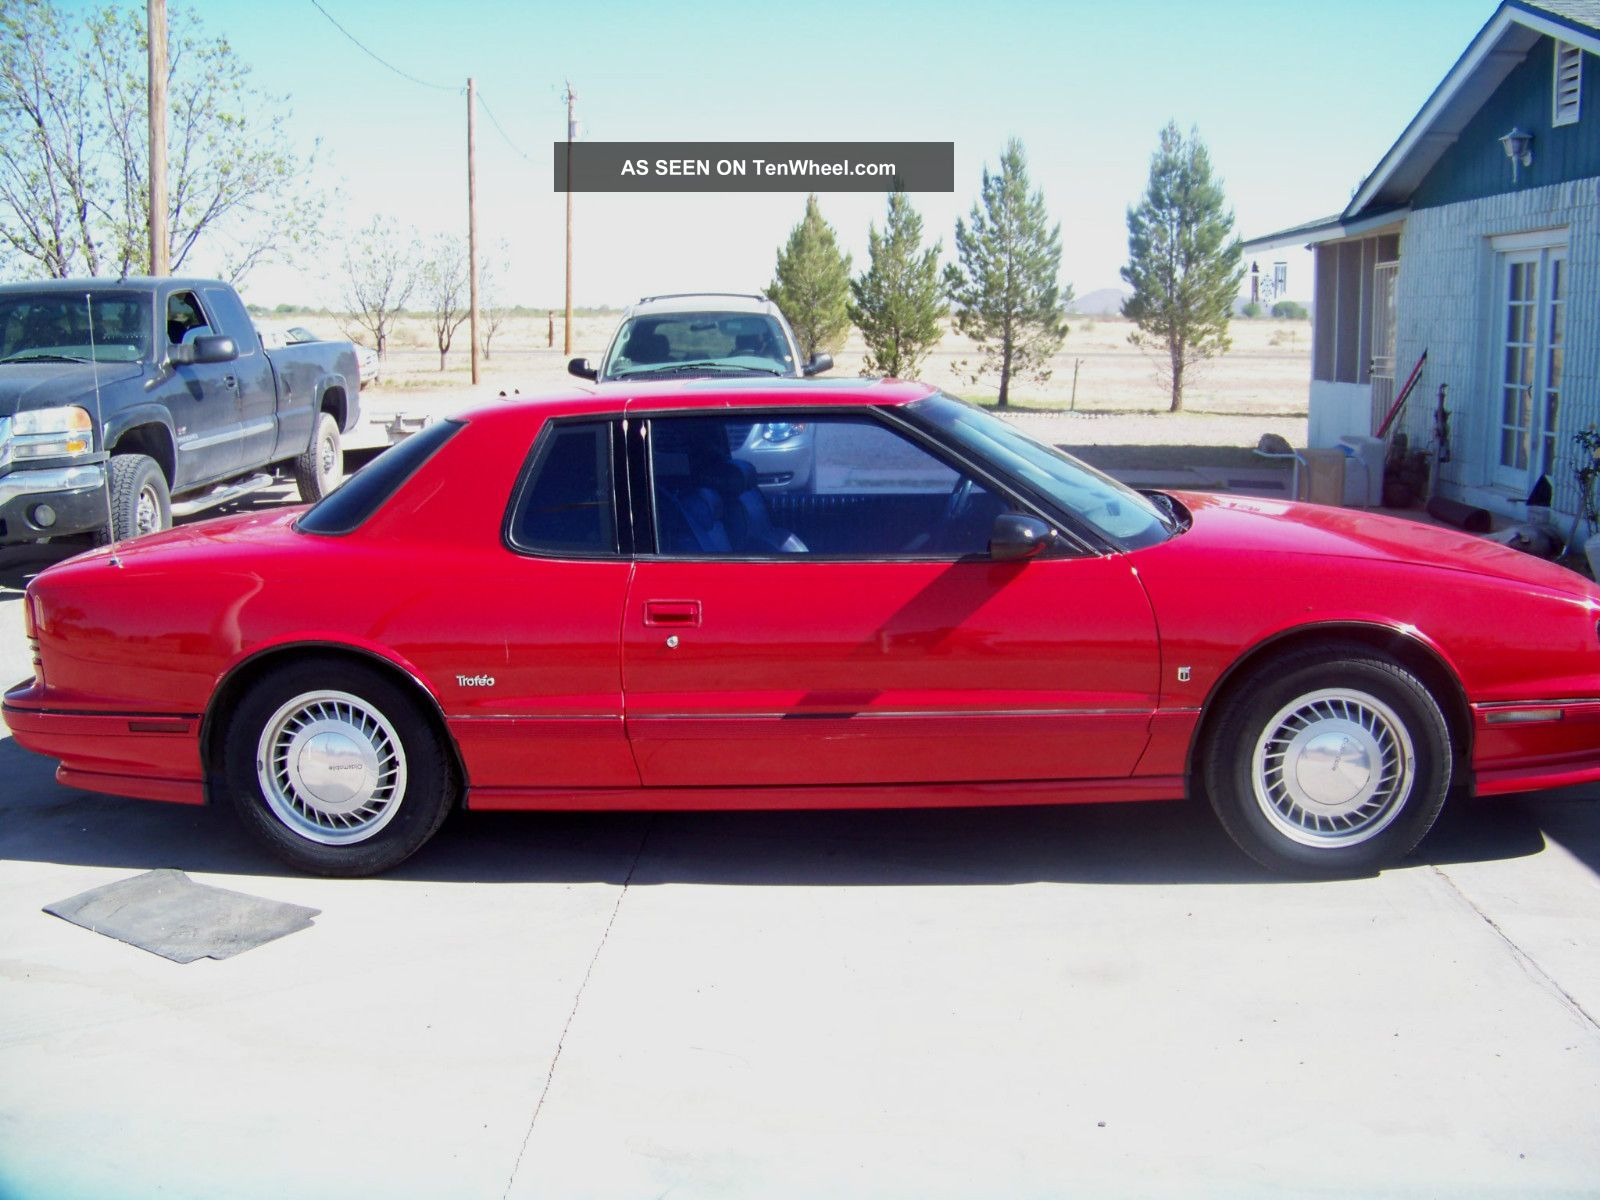 1990 Oldsmobile Trofeo Ready For The Drive Home 25 / 28 Mpg 1st Bid